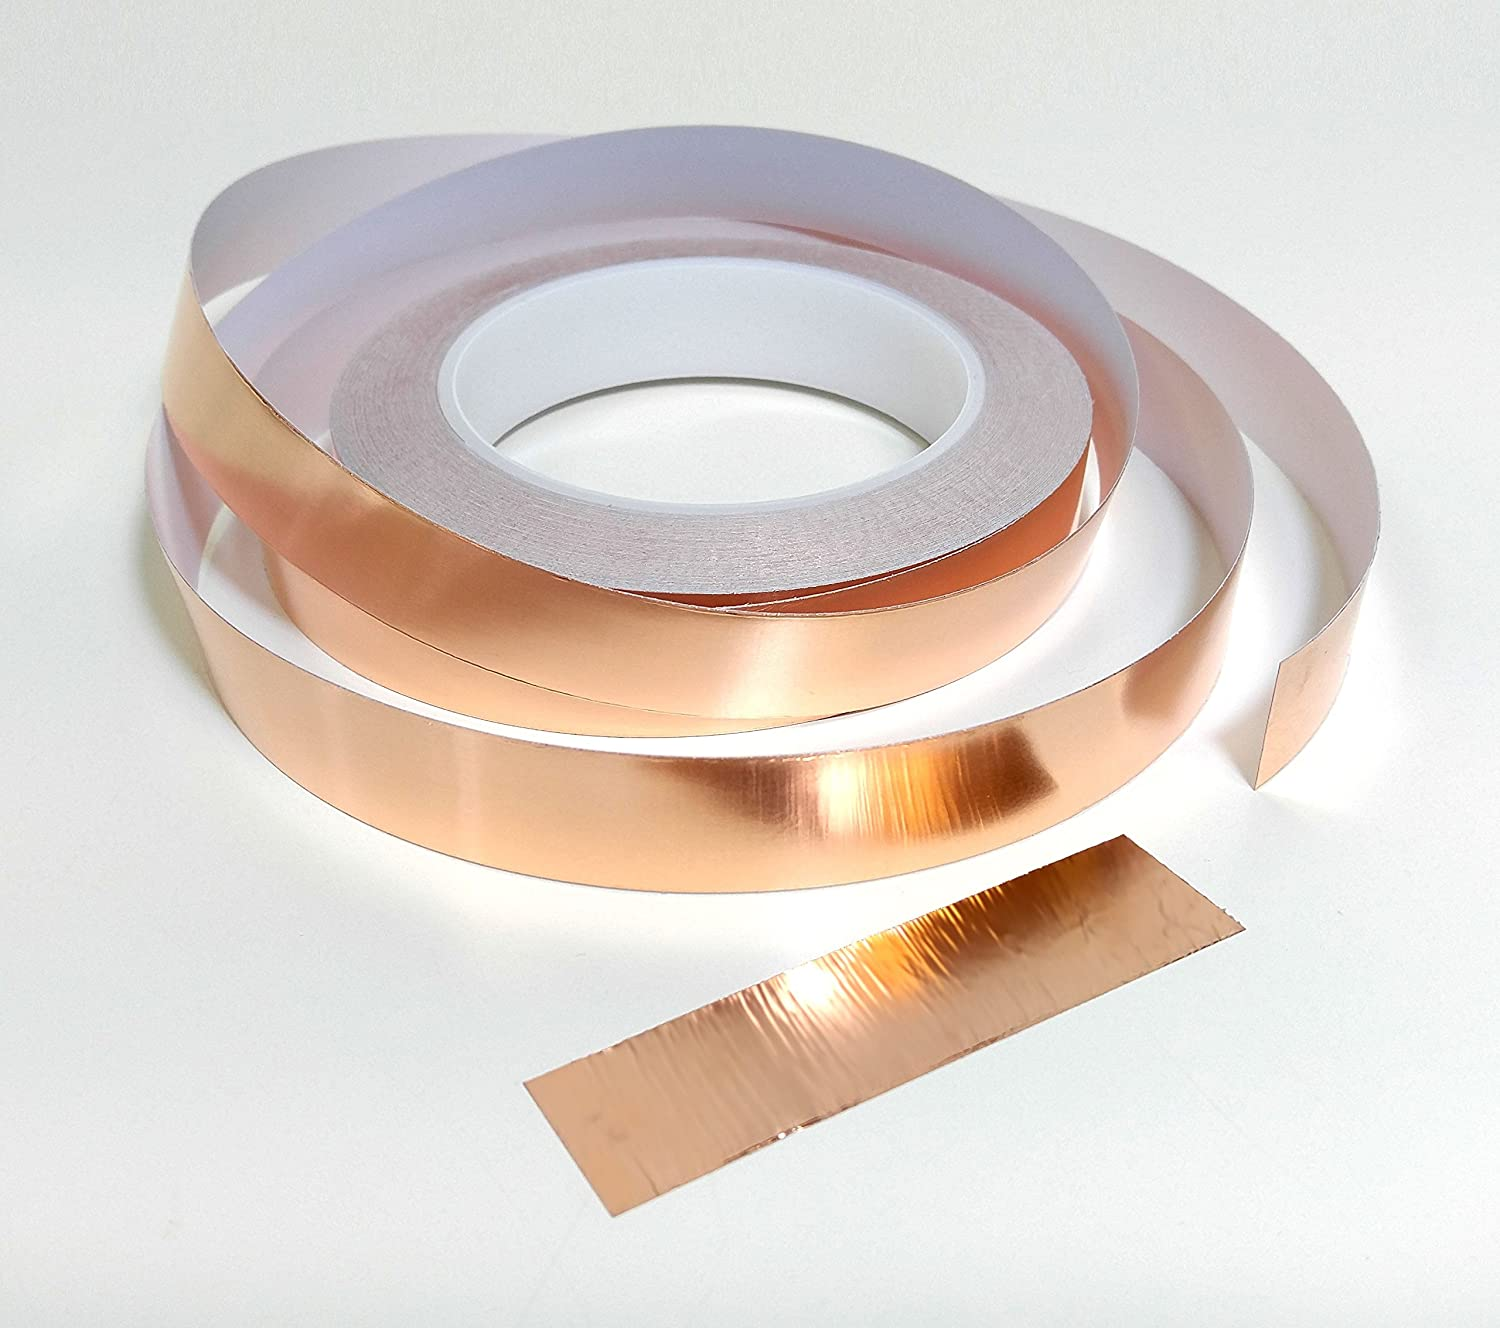 5mm 10mm 20mm x 25m Copper Slug Tape: Adhesive Copper Slug Snail Barrier Tape (10mm (W) x 25m (L)) EVG